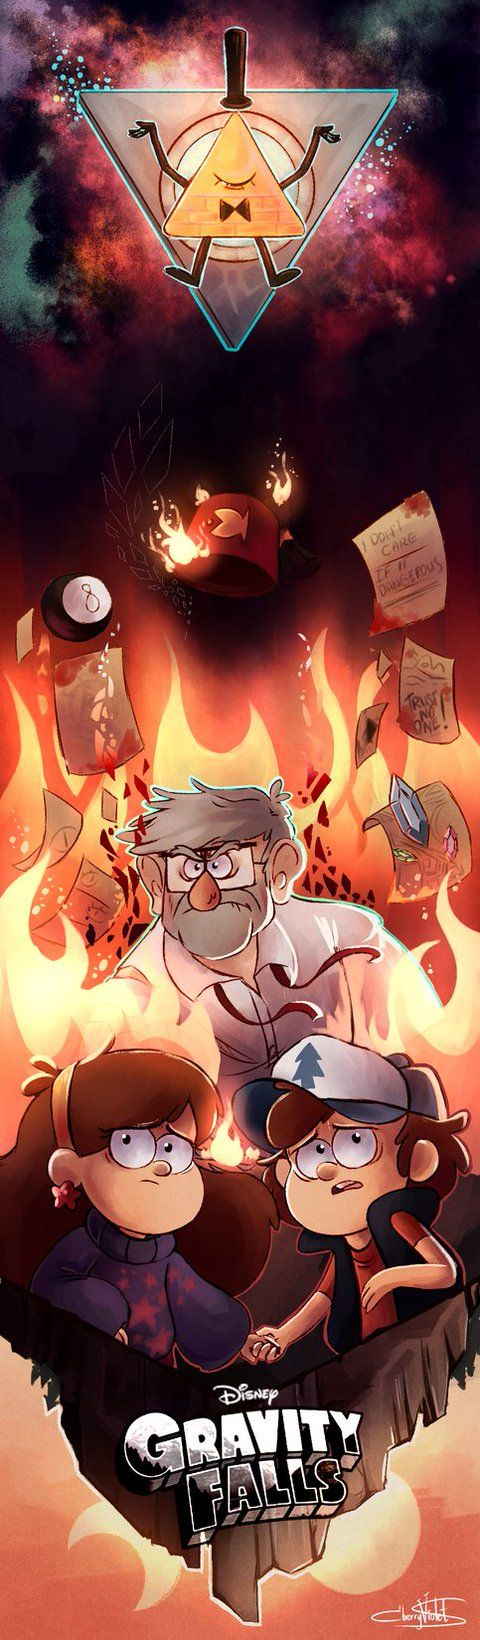 """Mabel hugged Dipper as flames began to rise around them. Bill Cipher has completed his purpose... He could leave in peace to become human for the rest of his life. But obviously, the universe hated this decision. Chaos rose around them. """"Is it happening, Dipper?"""" Mabel quivered. """"Yes, Mabel,"""" Dipper said quietly. He grabbed Mabel's hand- and together they leapt into the flames."""